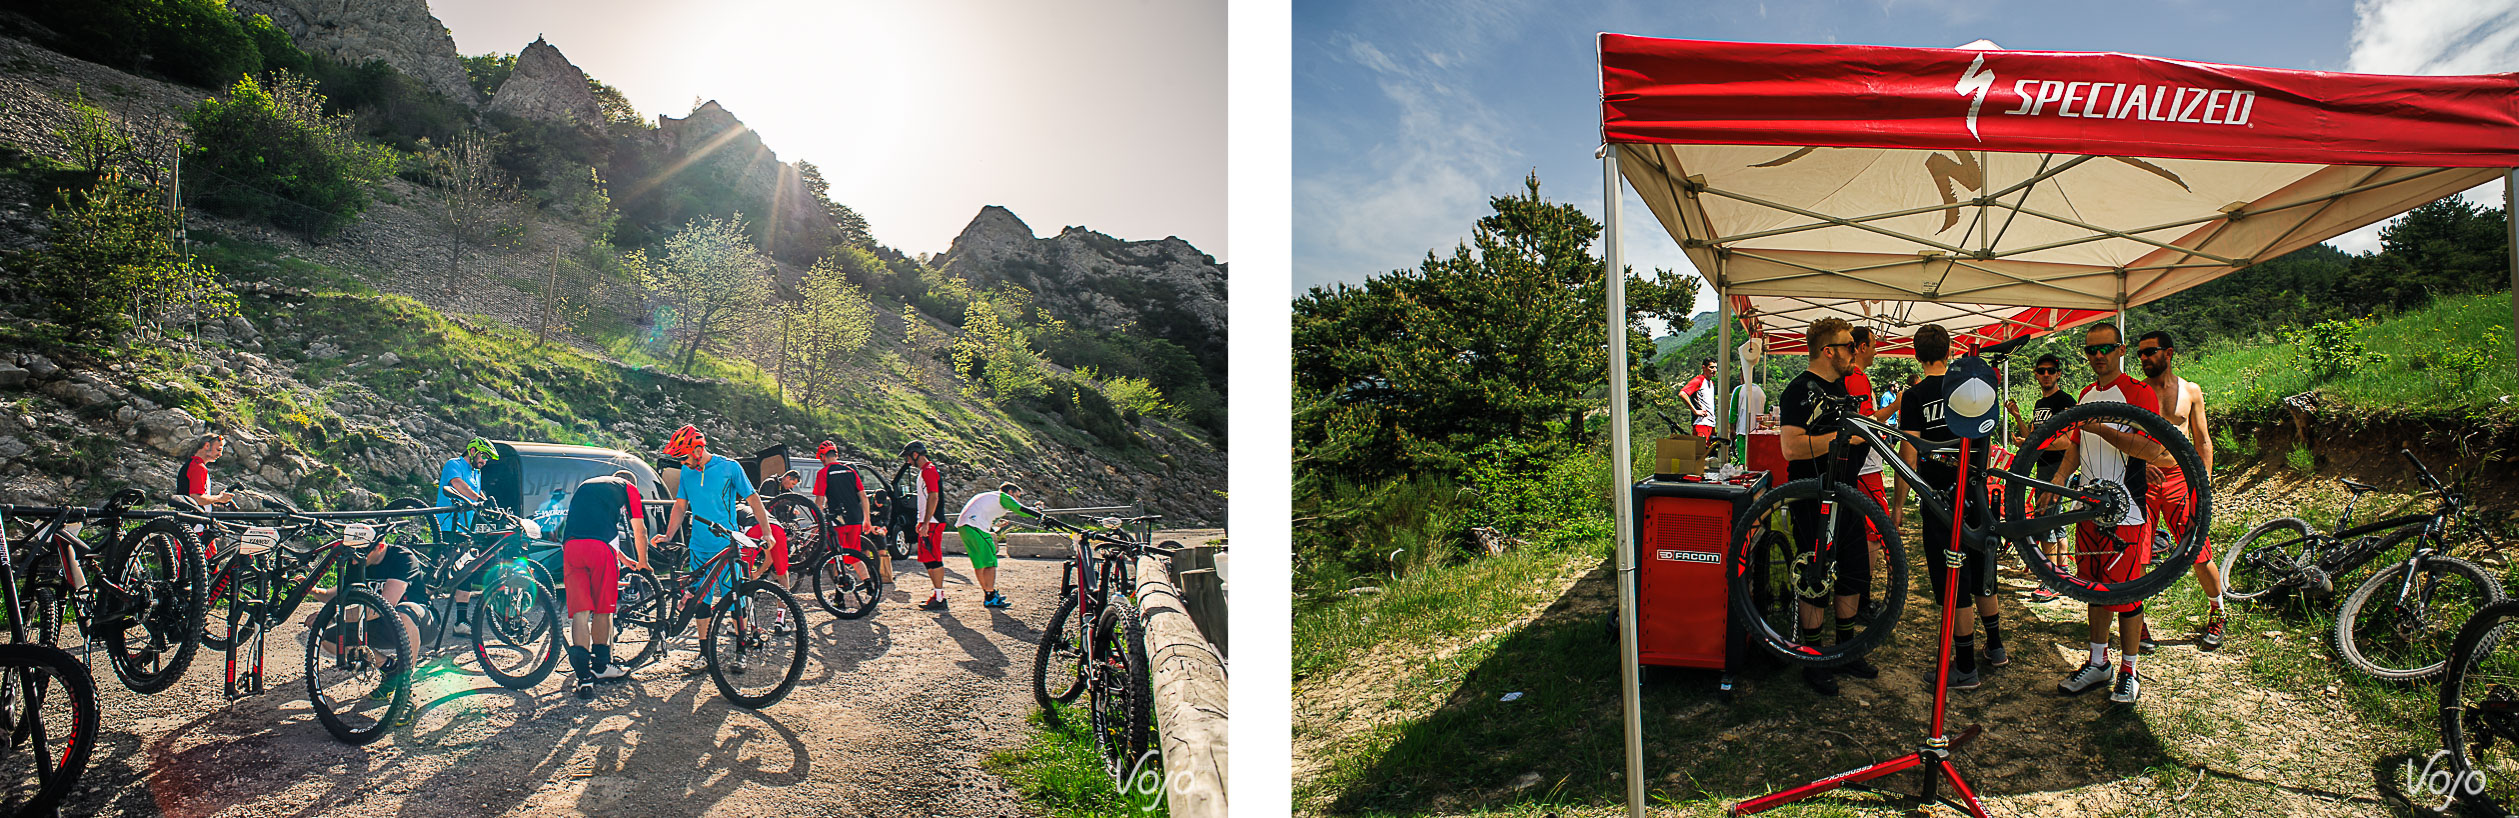 Compo_10_Specialized_Stumpjumper_2016_Swat_Copyright_OBeart_VojoMag-1